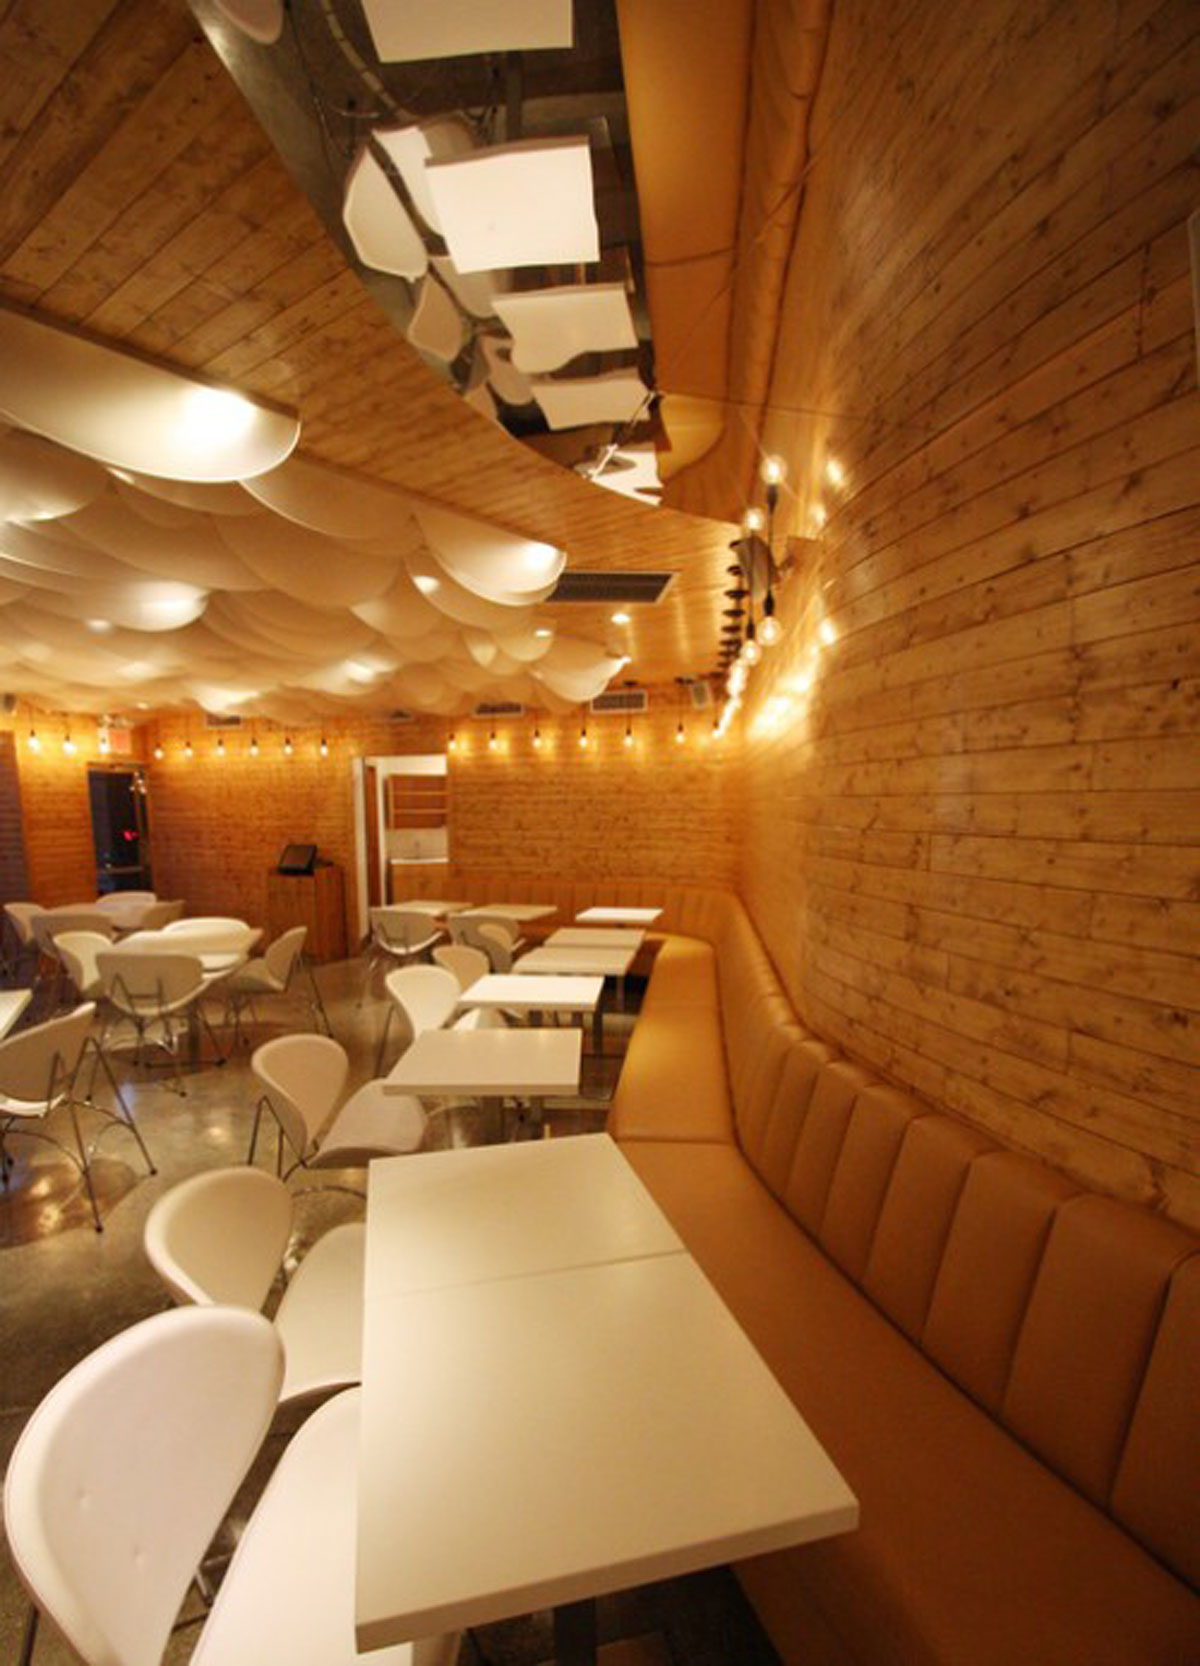 Kitchen Design Queens Ny Nice Cafe And Restaurant Interior Iroonie